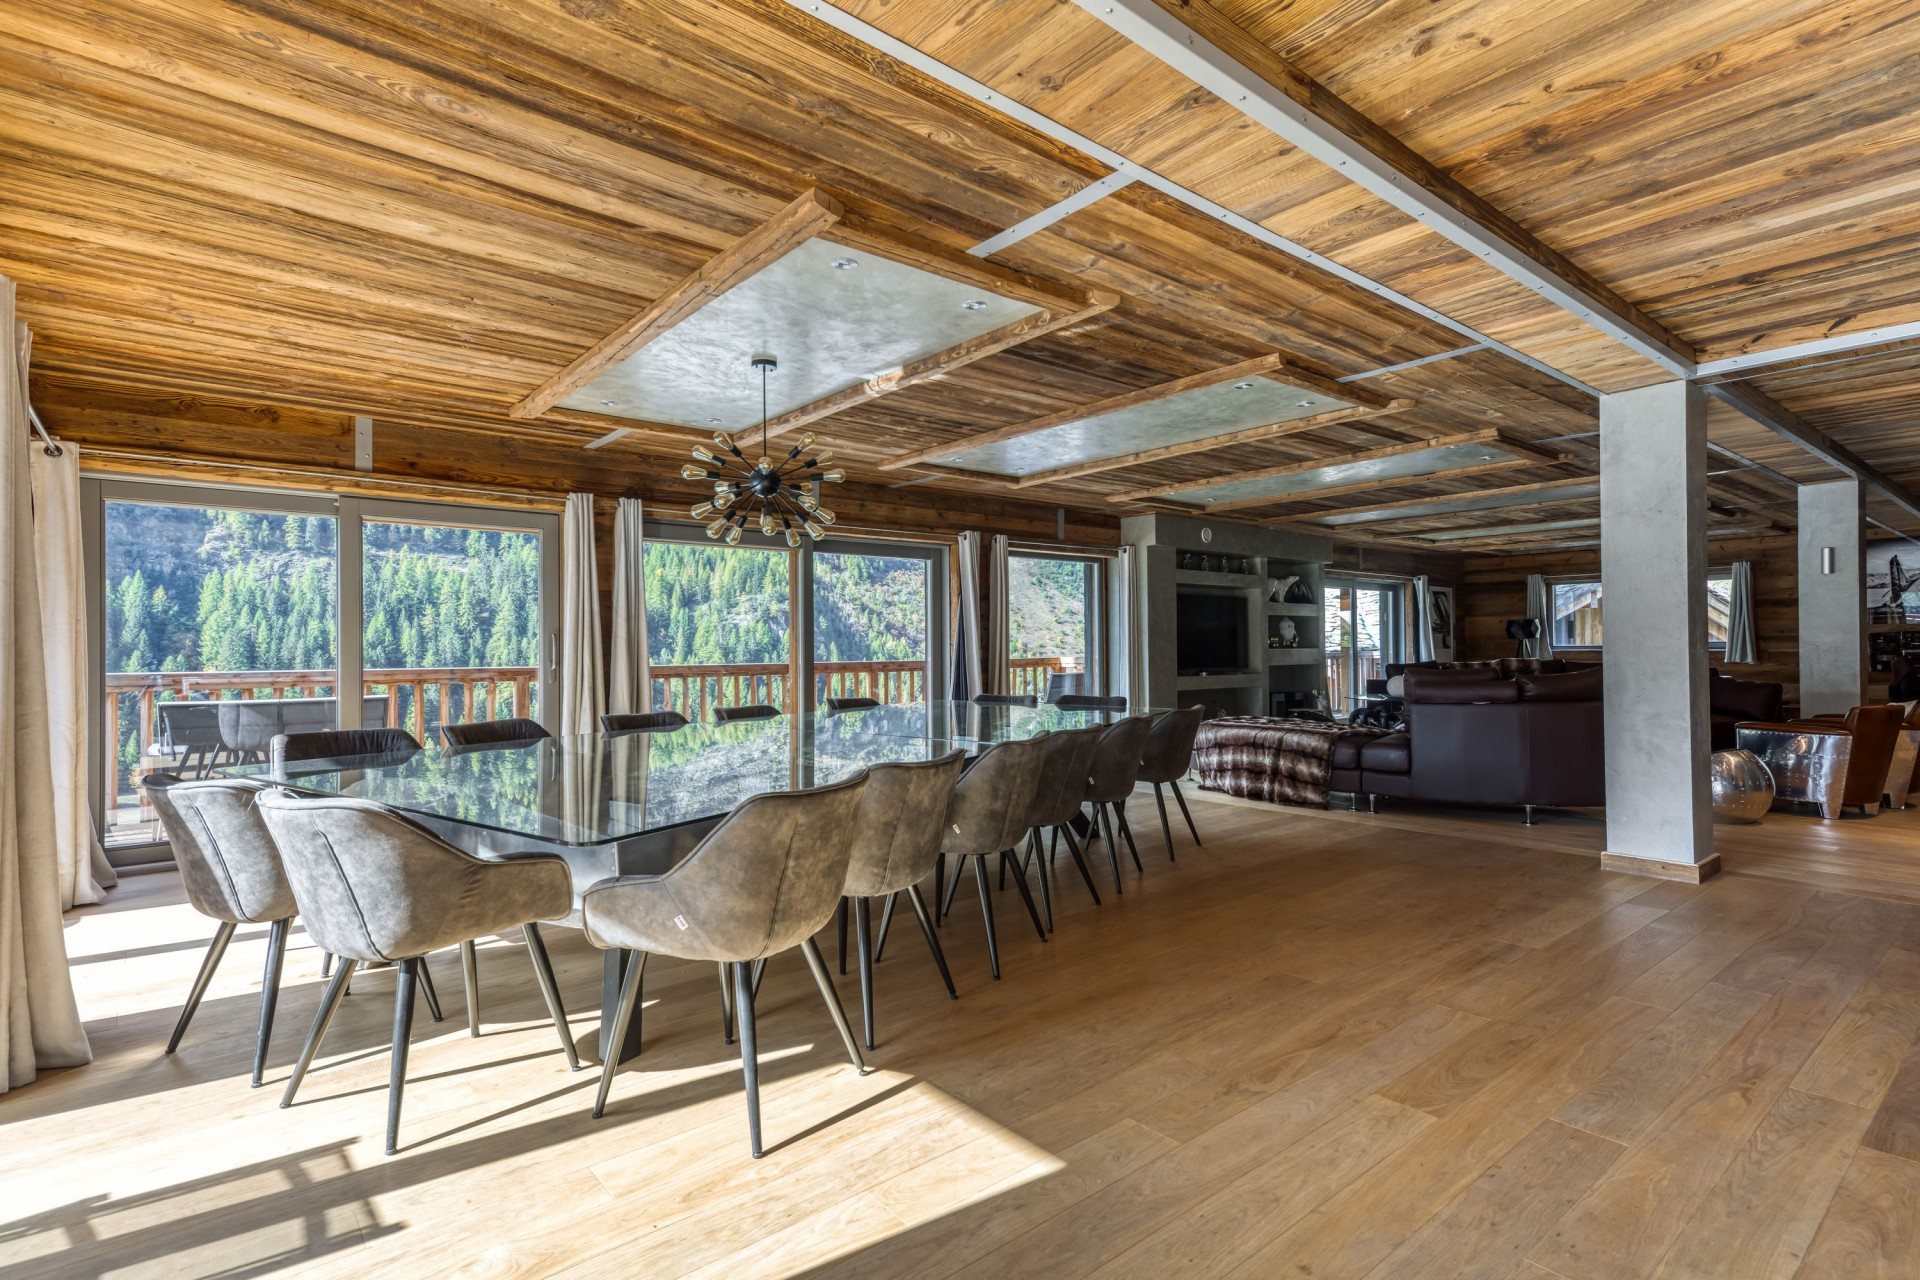 Tignes Location Chalet Luxe Turquoize Salle A Manger2